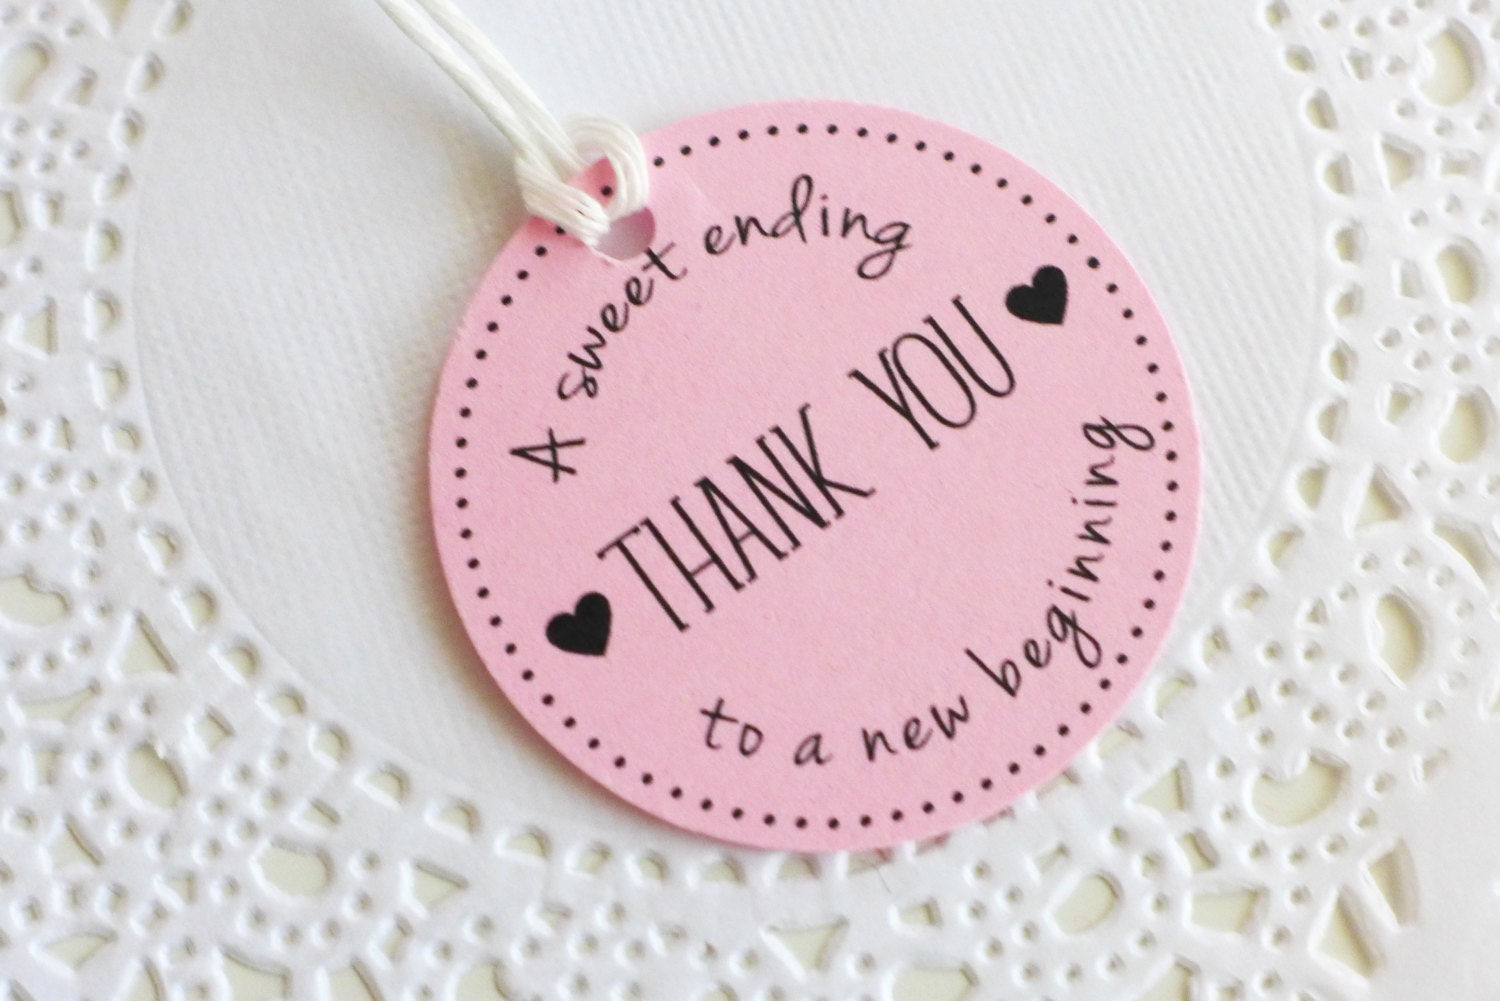 Thank You Tags A sweet ending to a new Beginning Bridal